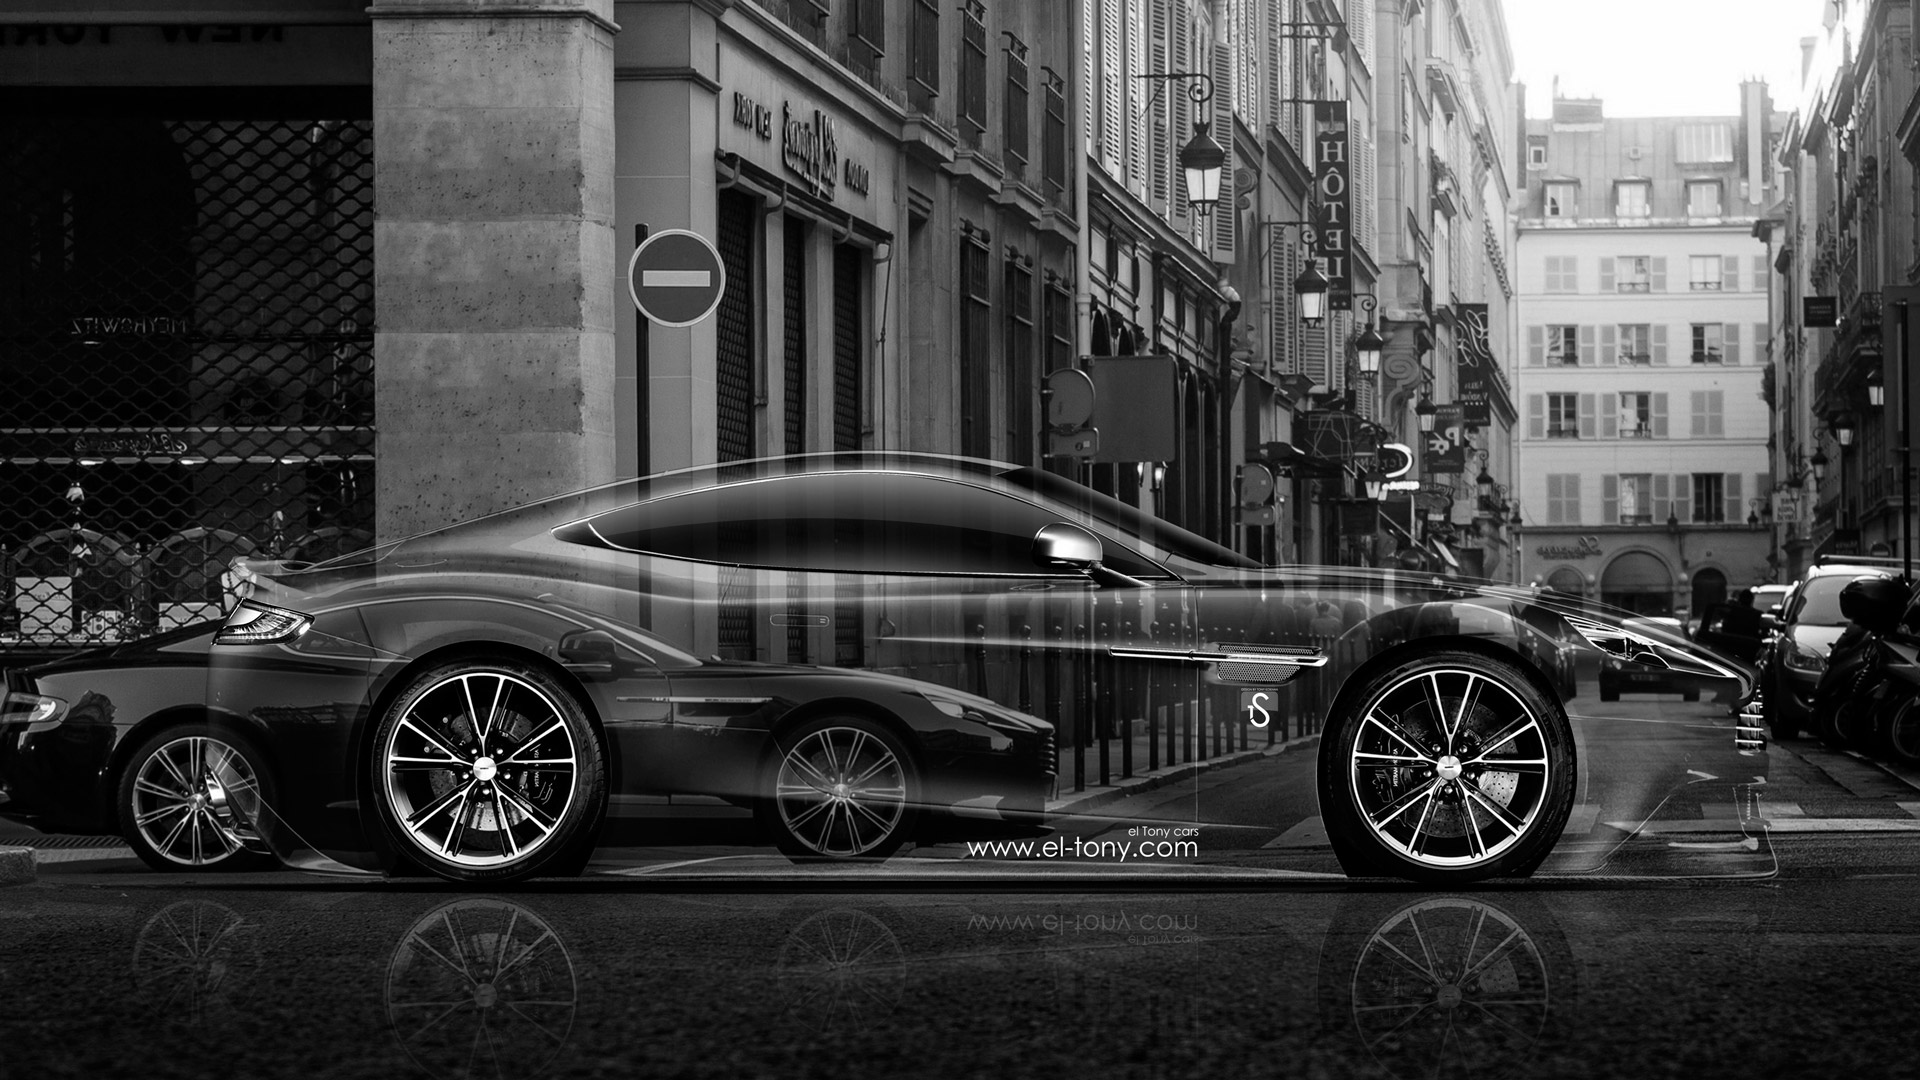 Aston Martin Vanquish Side Crystal City Car 2014